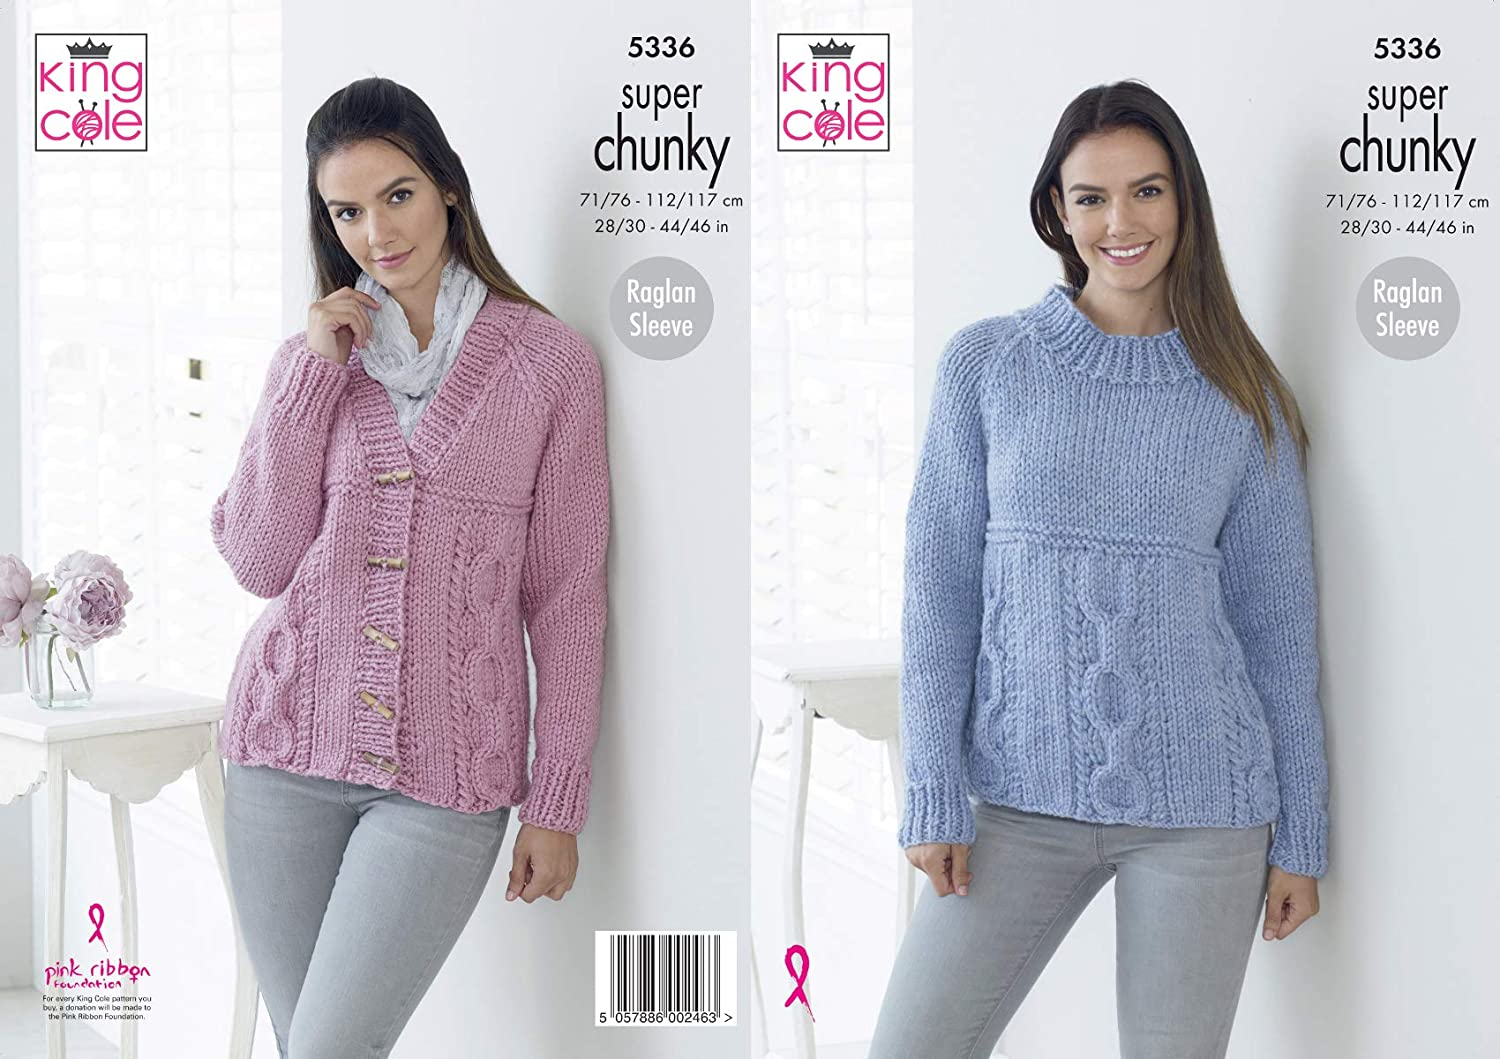 King Cole Ladies Double Knitting Pattern Raglan Cabled Sweater /& Cardigan 4839